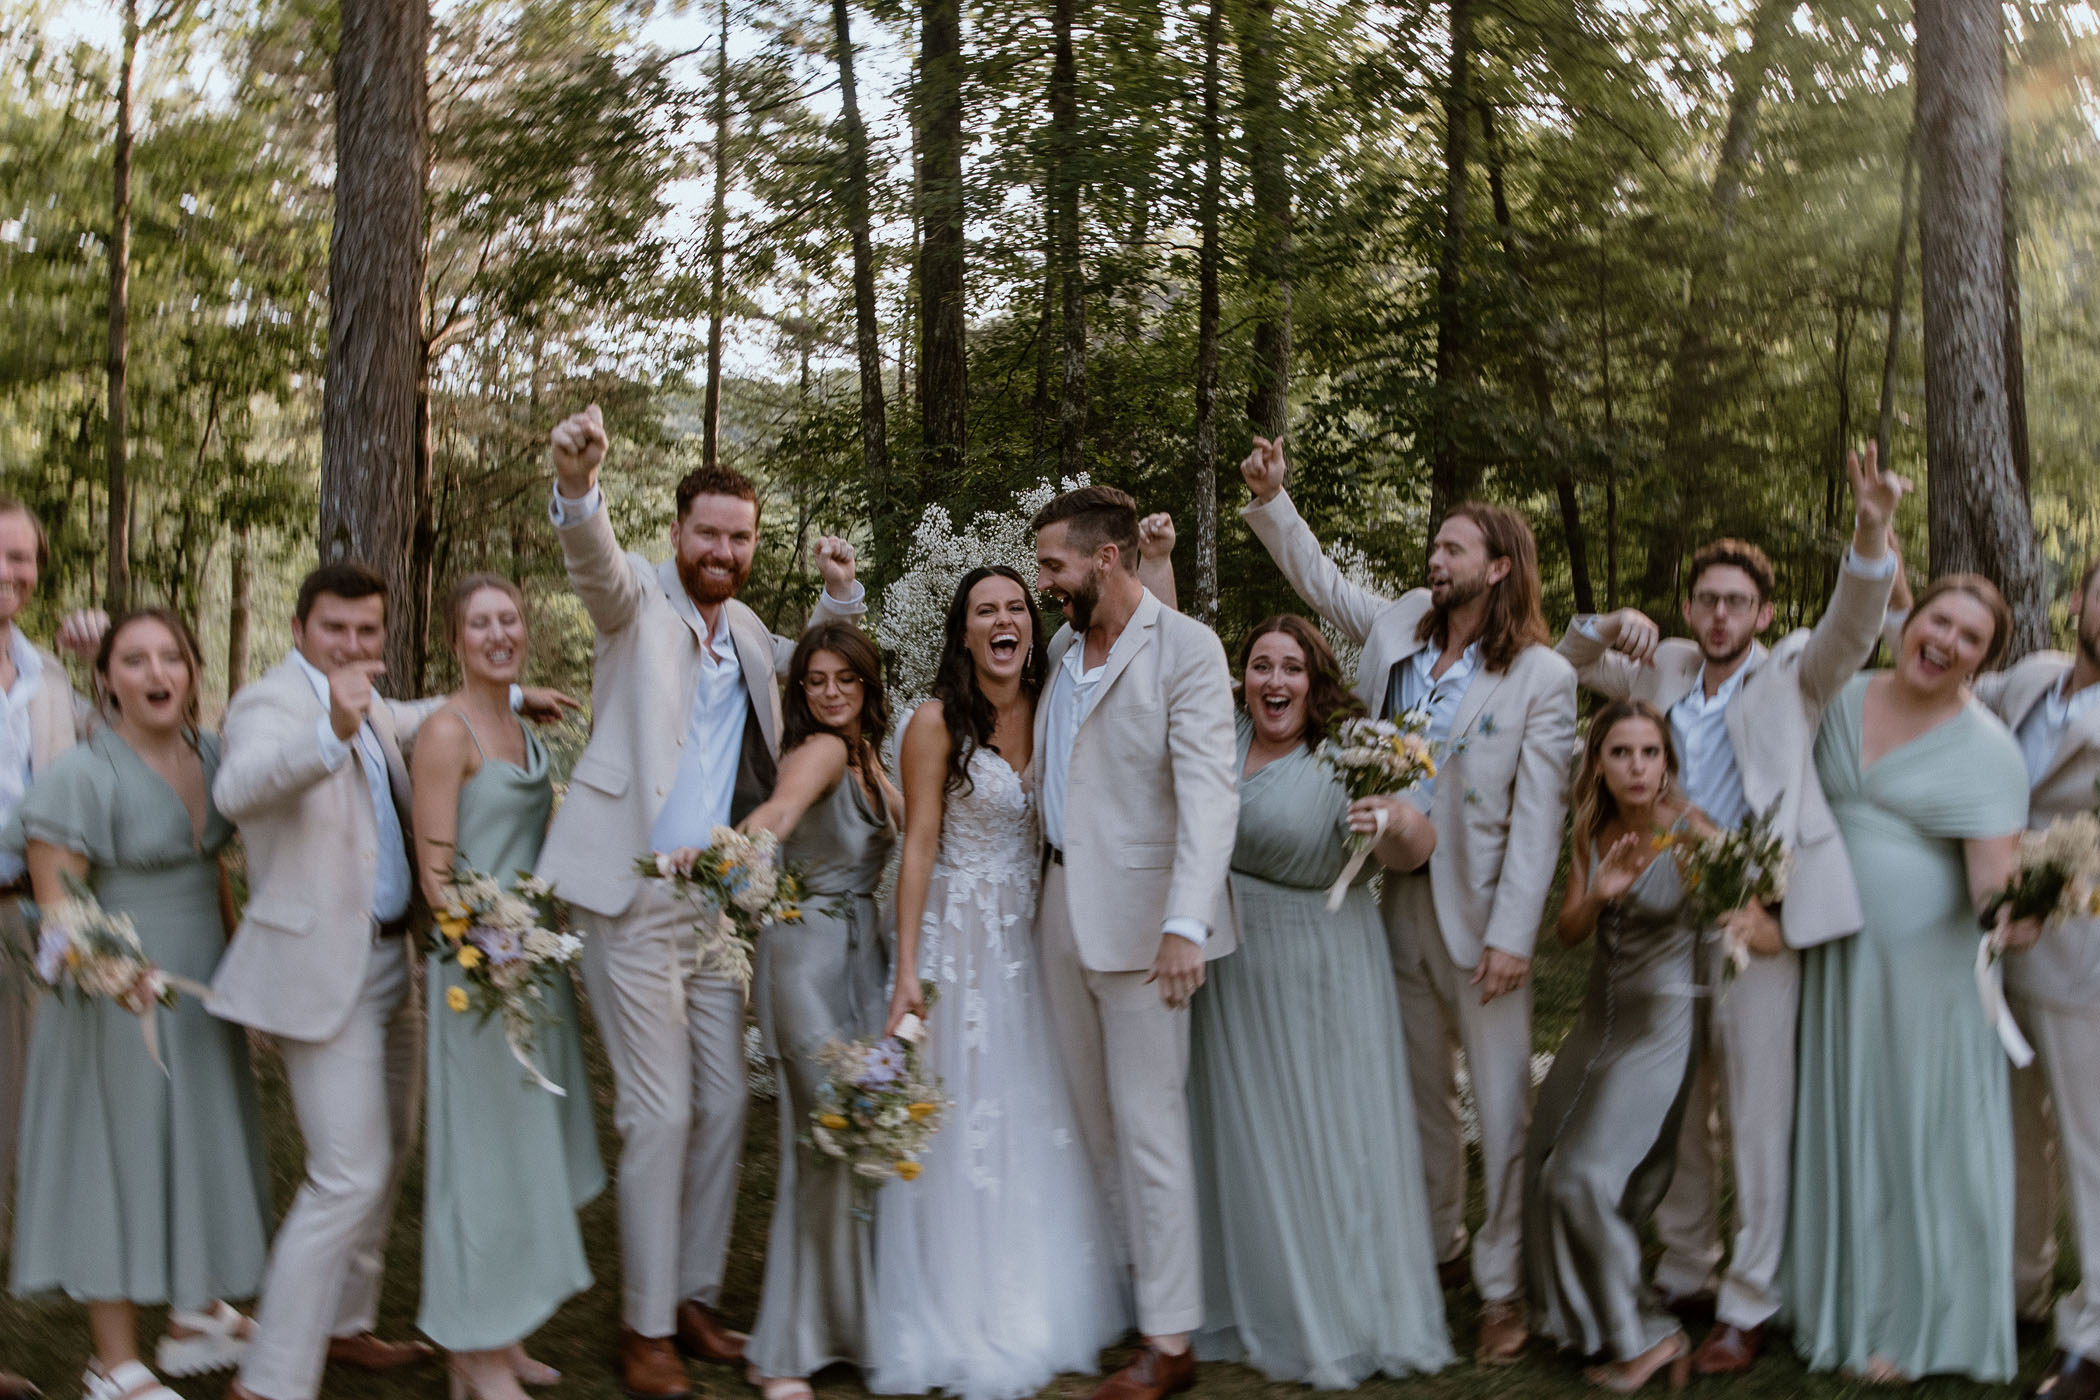 Bounce House Wedding in the Forest